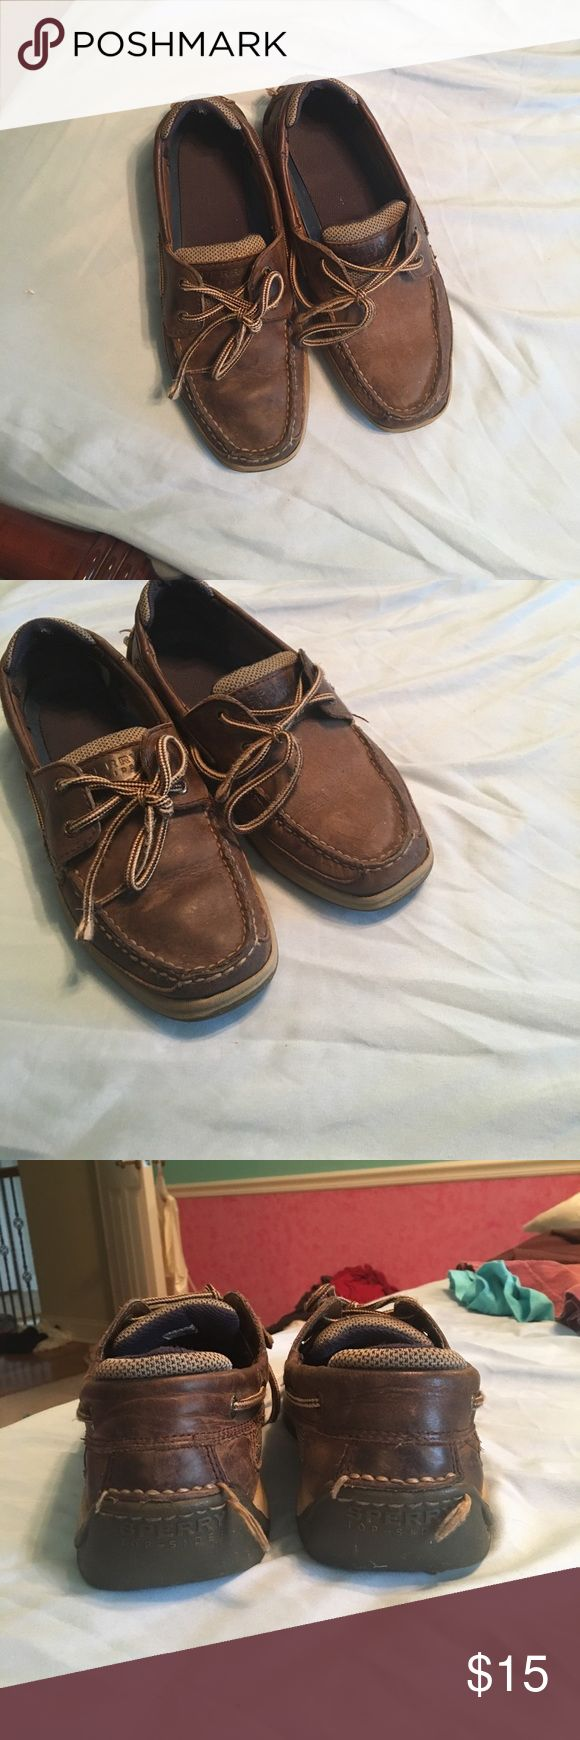 Men's' sperrys Good condition chocolate brown sperrys. Could have the leather cleaned but they've got some life left in them! Great for growing kids who might still get bigger feet. There's some threads on the back but I didn't want to cut them in case you knew something you'd want to do to fix that. Sperry Top-Sider Shoes Loafers & Slip-Ons